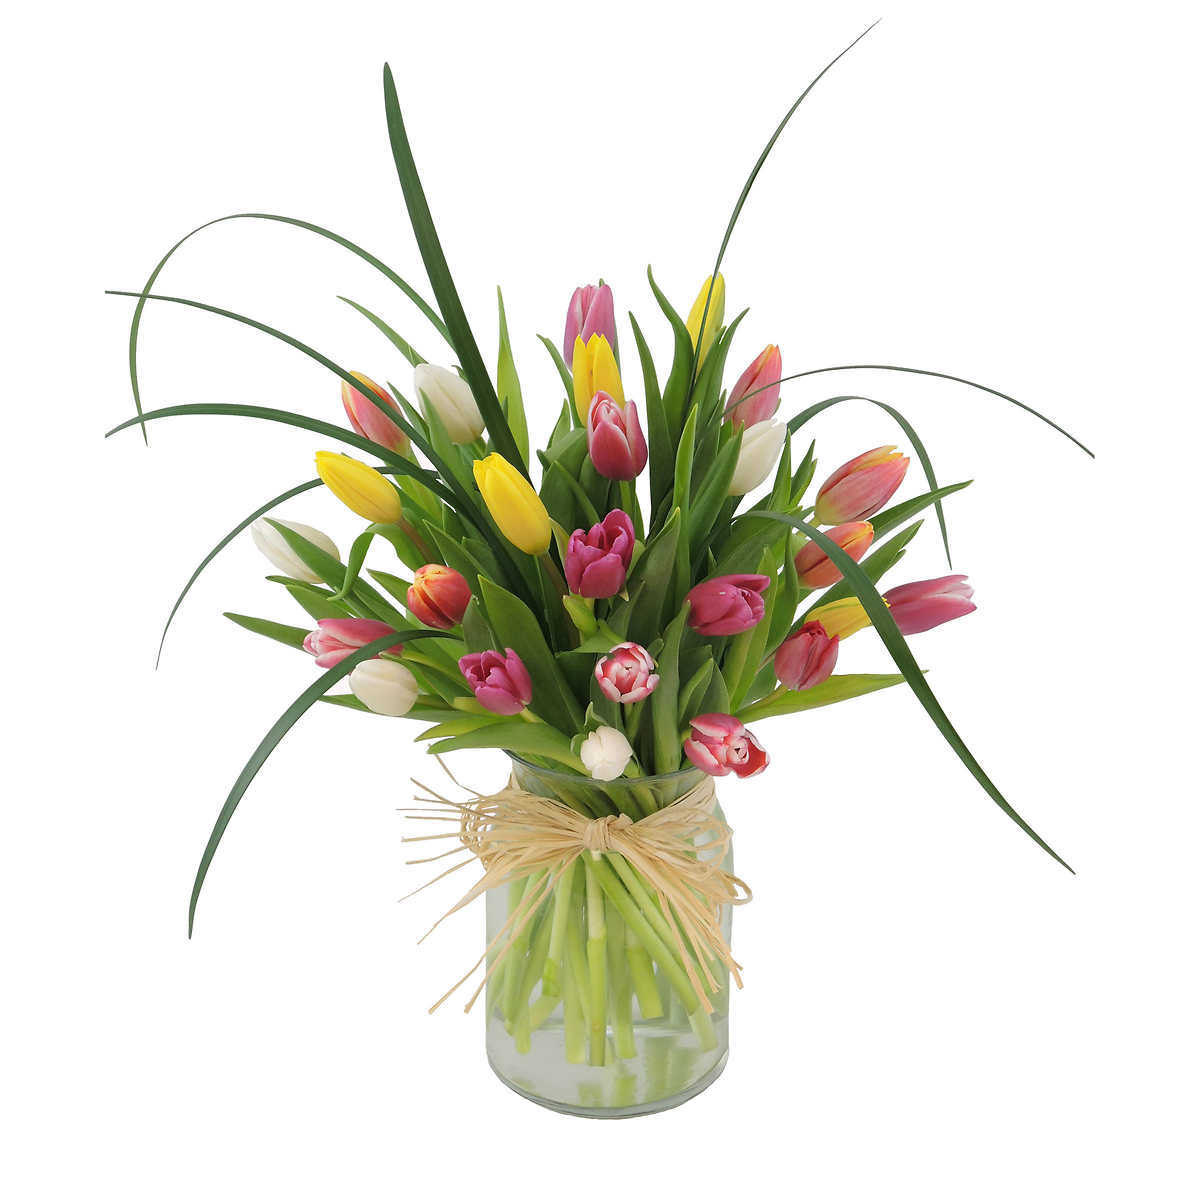 25 Colourful Tulips In Vase